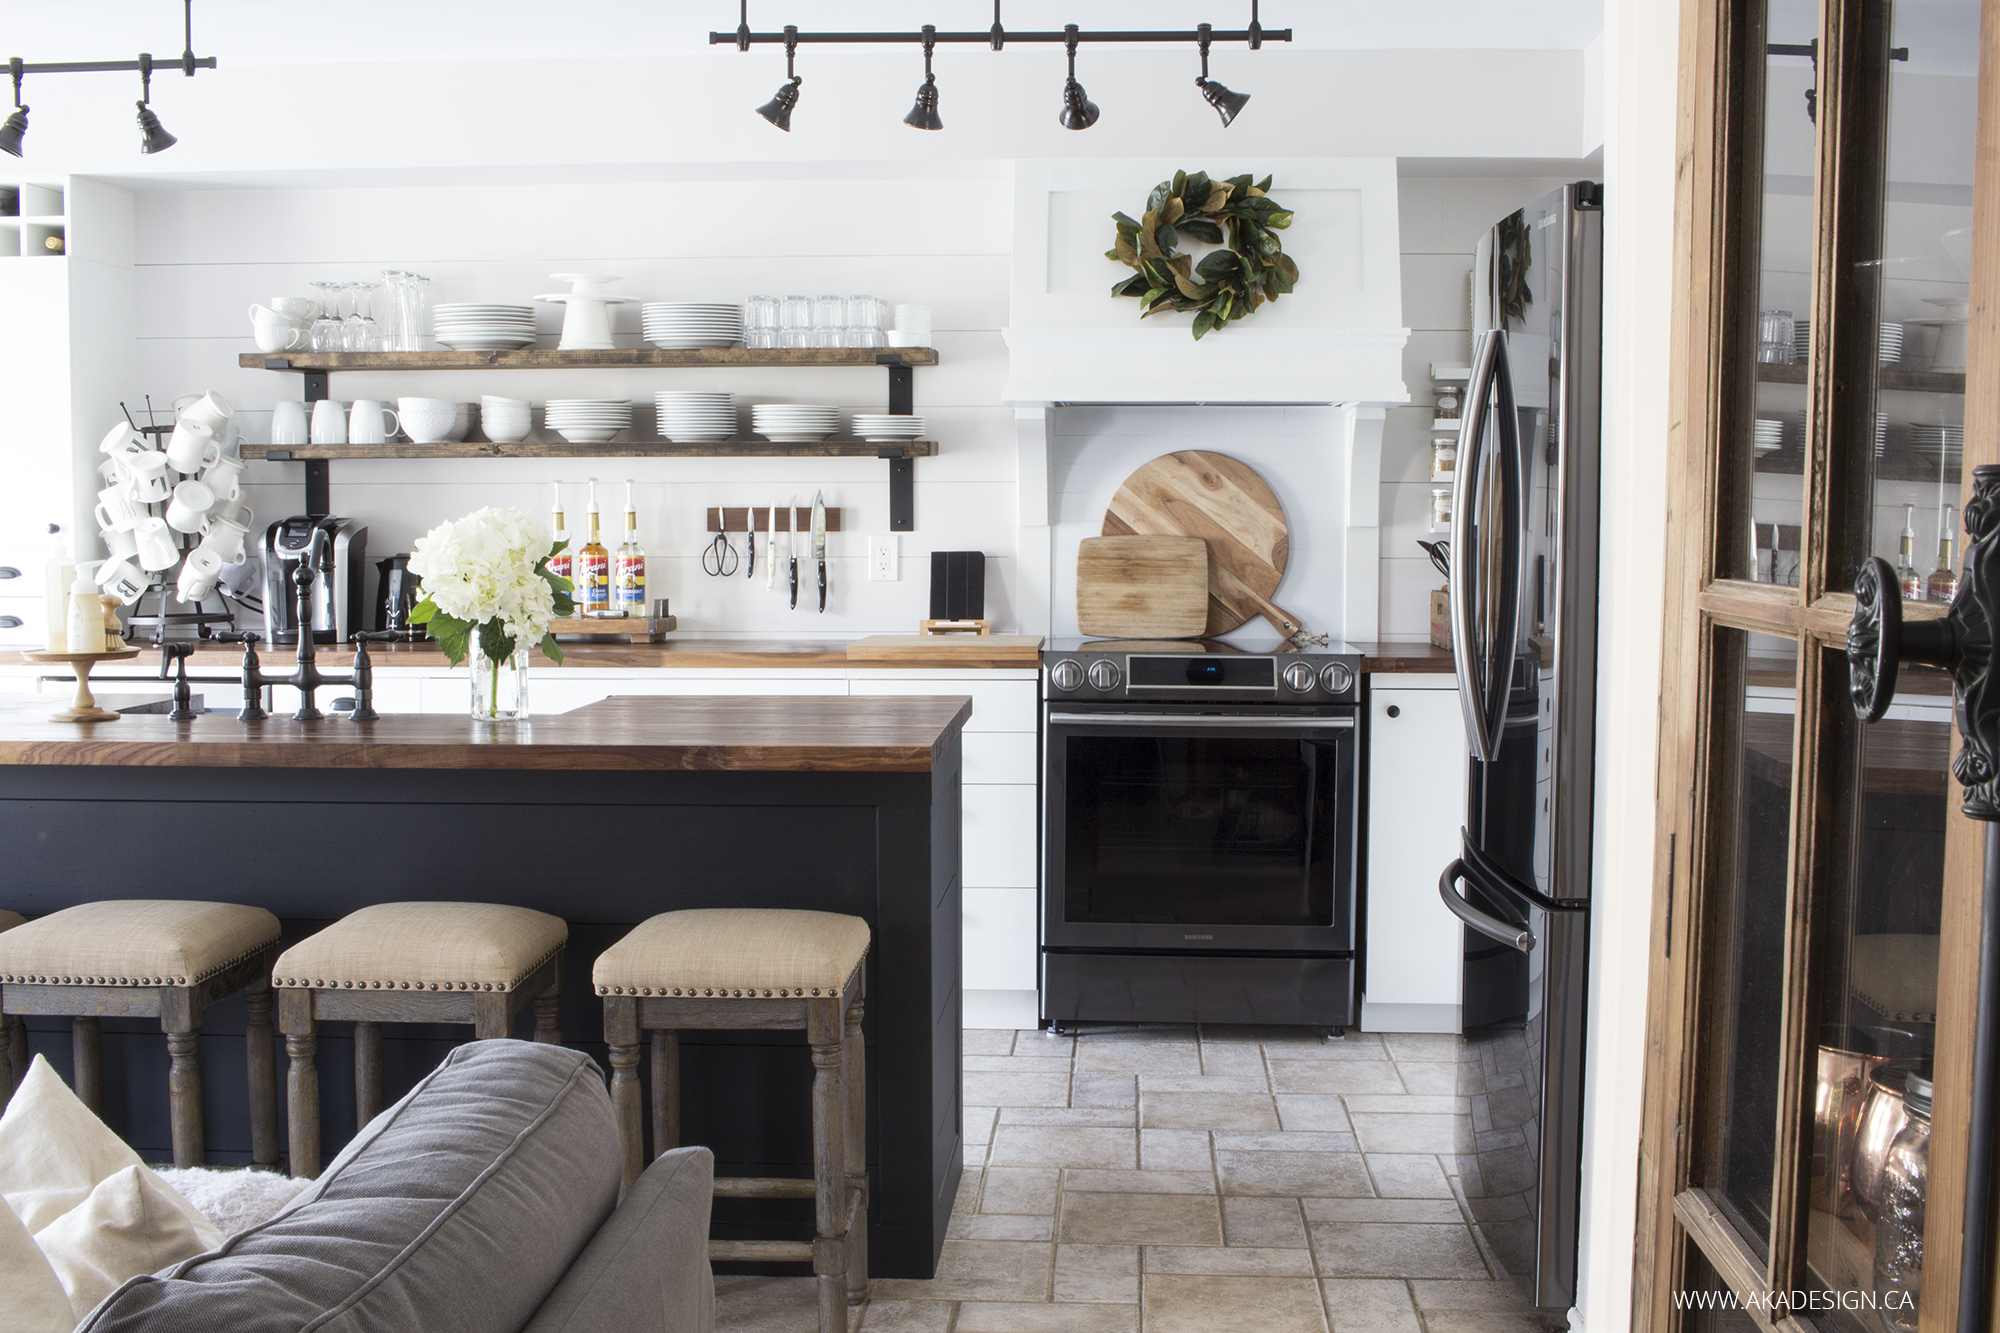 Especial Coloured Islands Happy Housie N You Will Swoon Over This Black Island Via Aka Design Her Farmhouse Kitchen Makeover Is Ionfor Kitchens Black If You Are A Fan houzz-02 Gray And White Kitchen